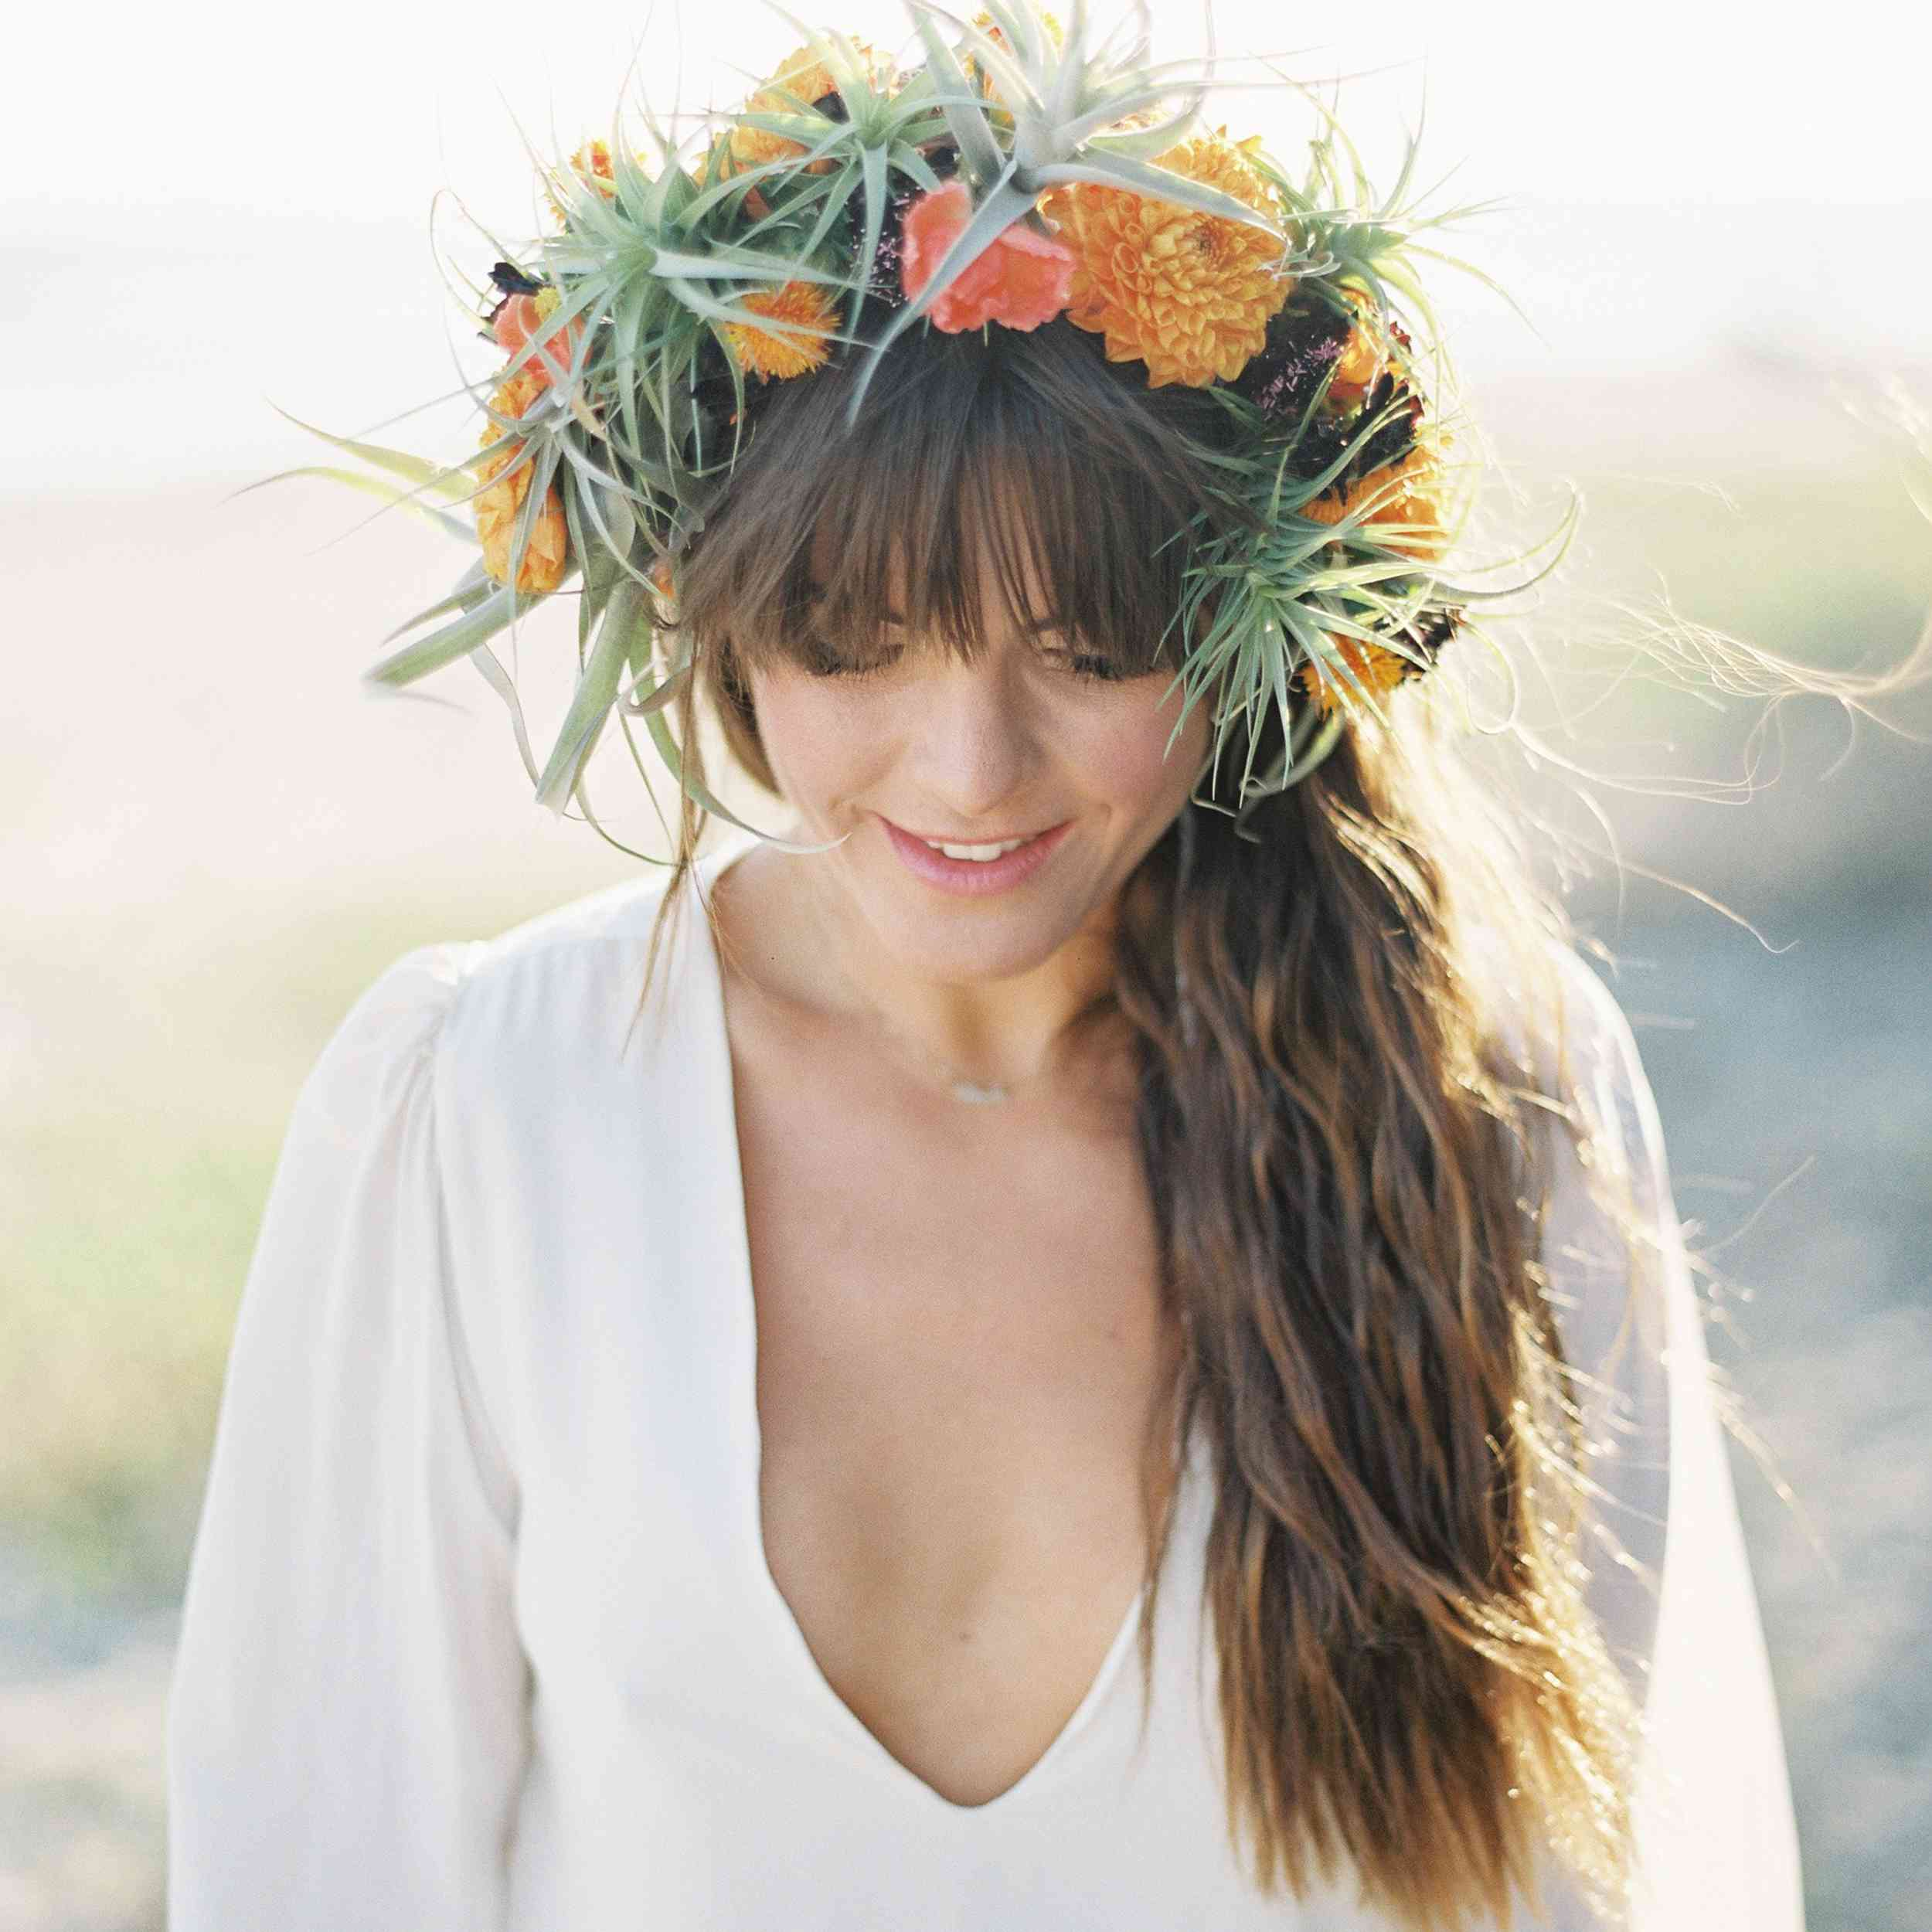 Wedding Hairstyle With Bangs: 17 Wedding Hairstyle Ideas For Brides With Bangs